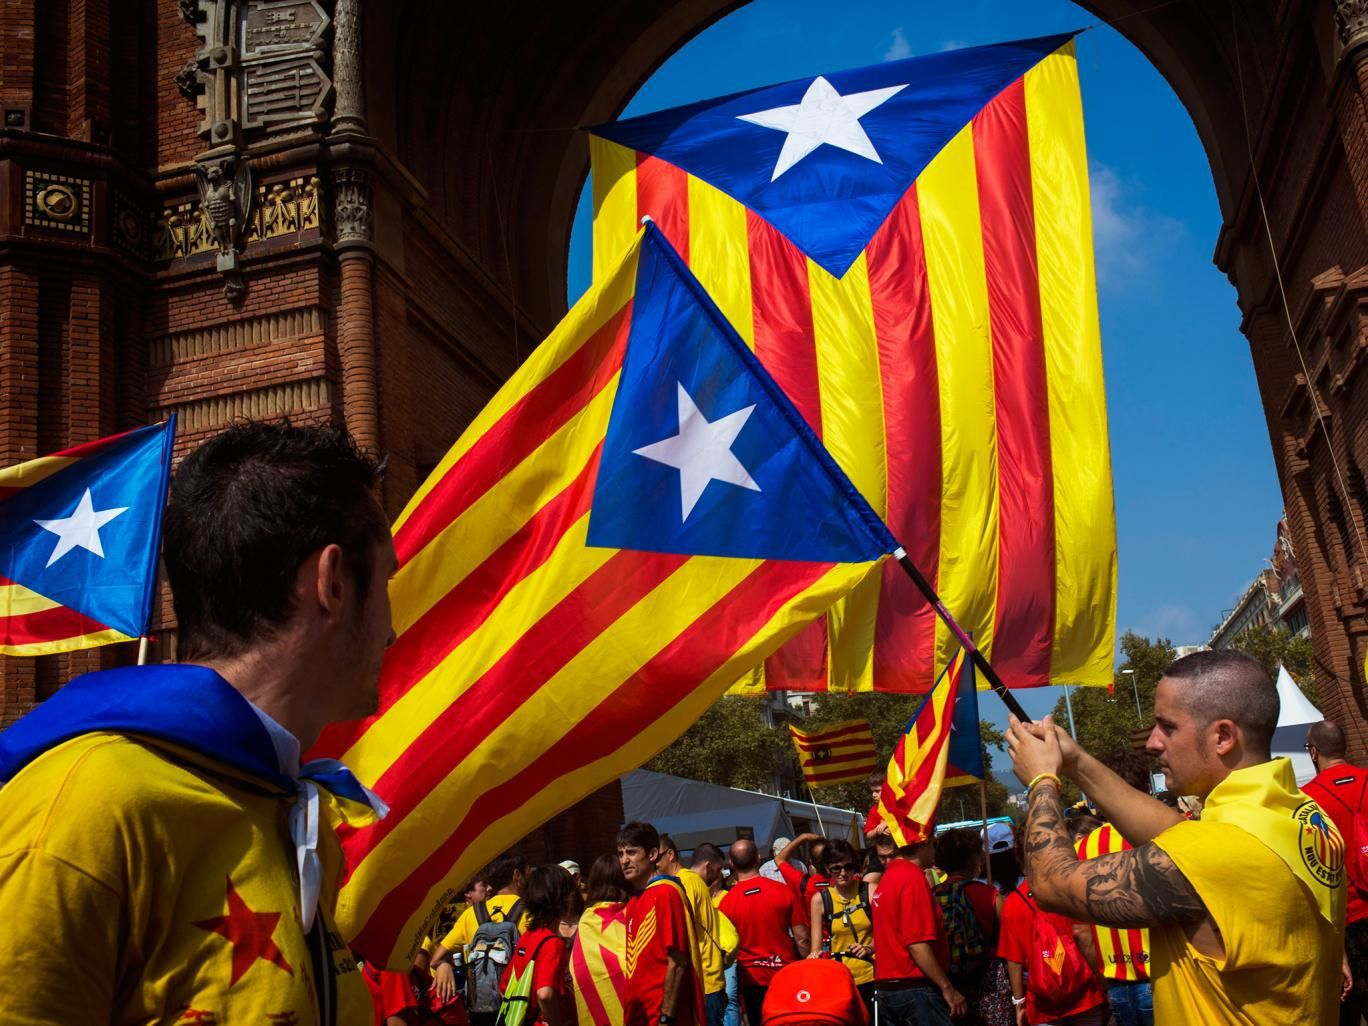 CATALOGNE : UN REFERENDUM NI TRANSPARENT NI CREDIBLE